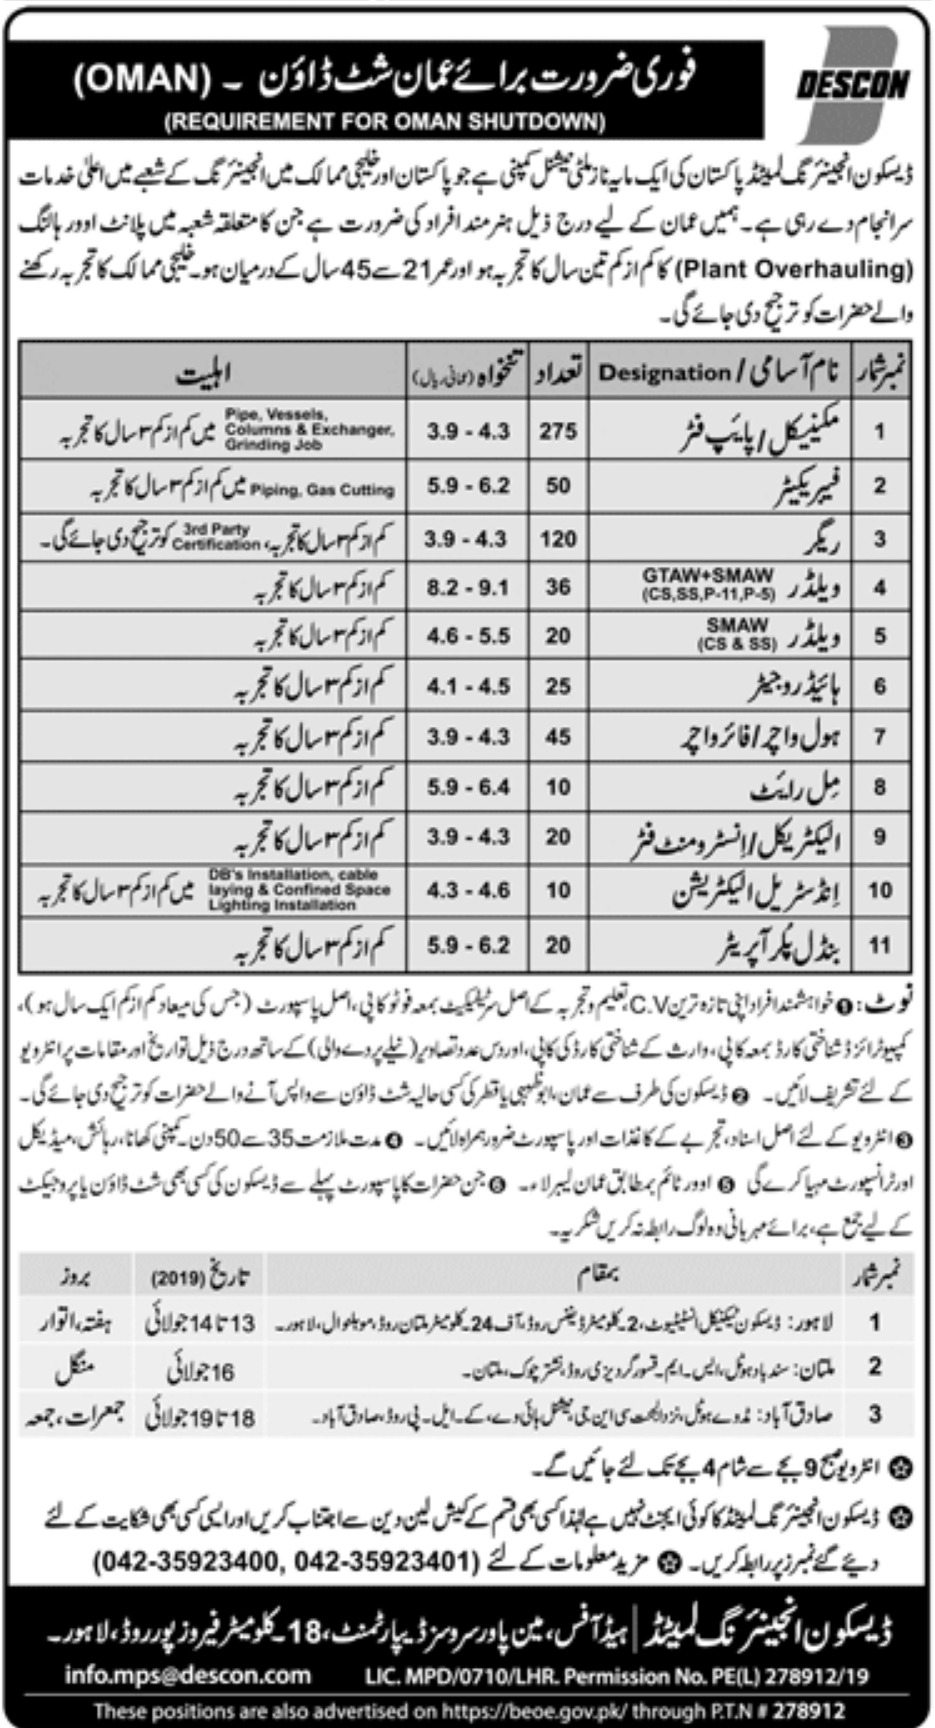 Descon Engineering Limited Jobs 2019 Oman